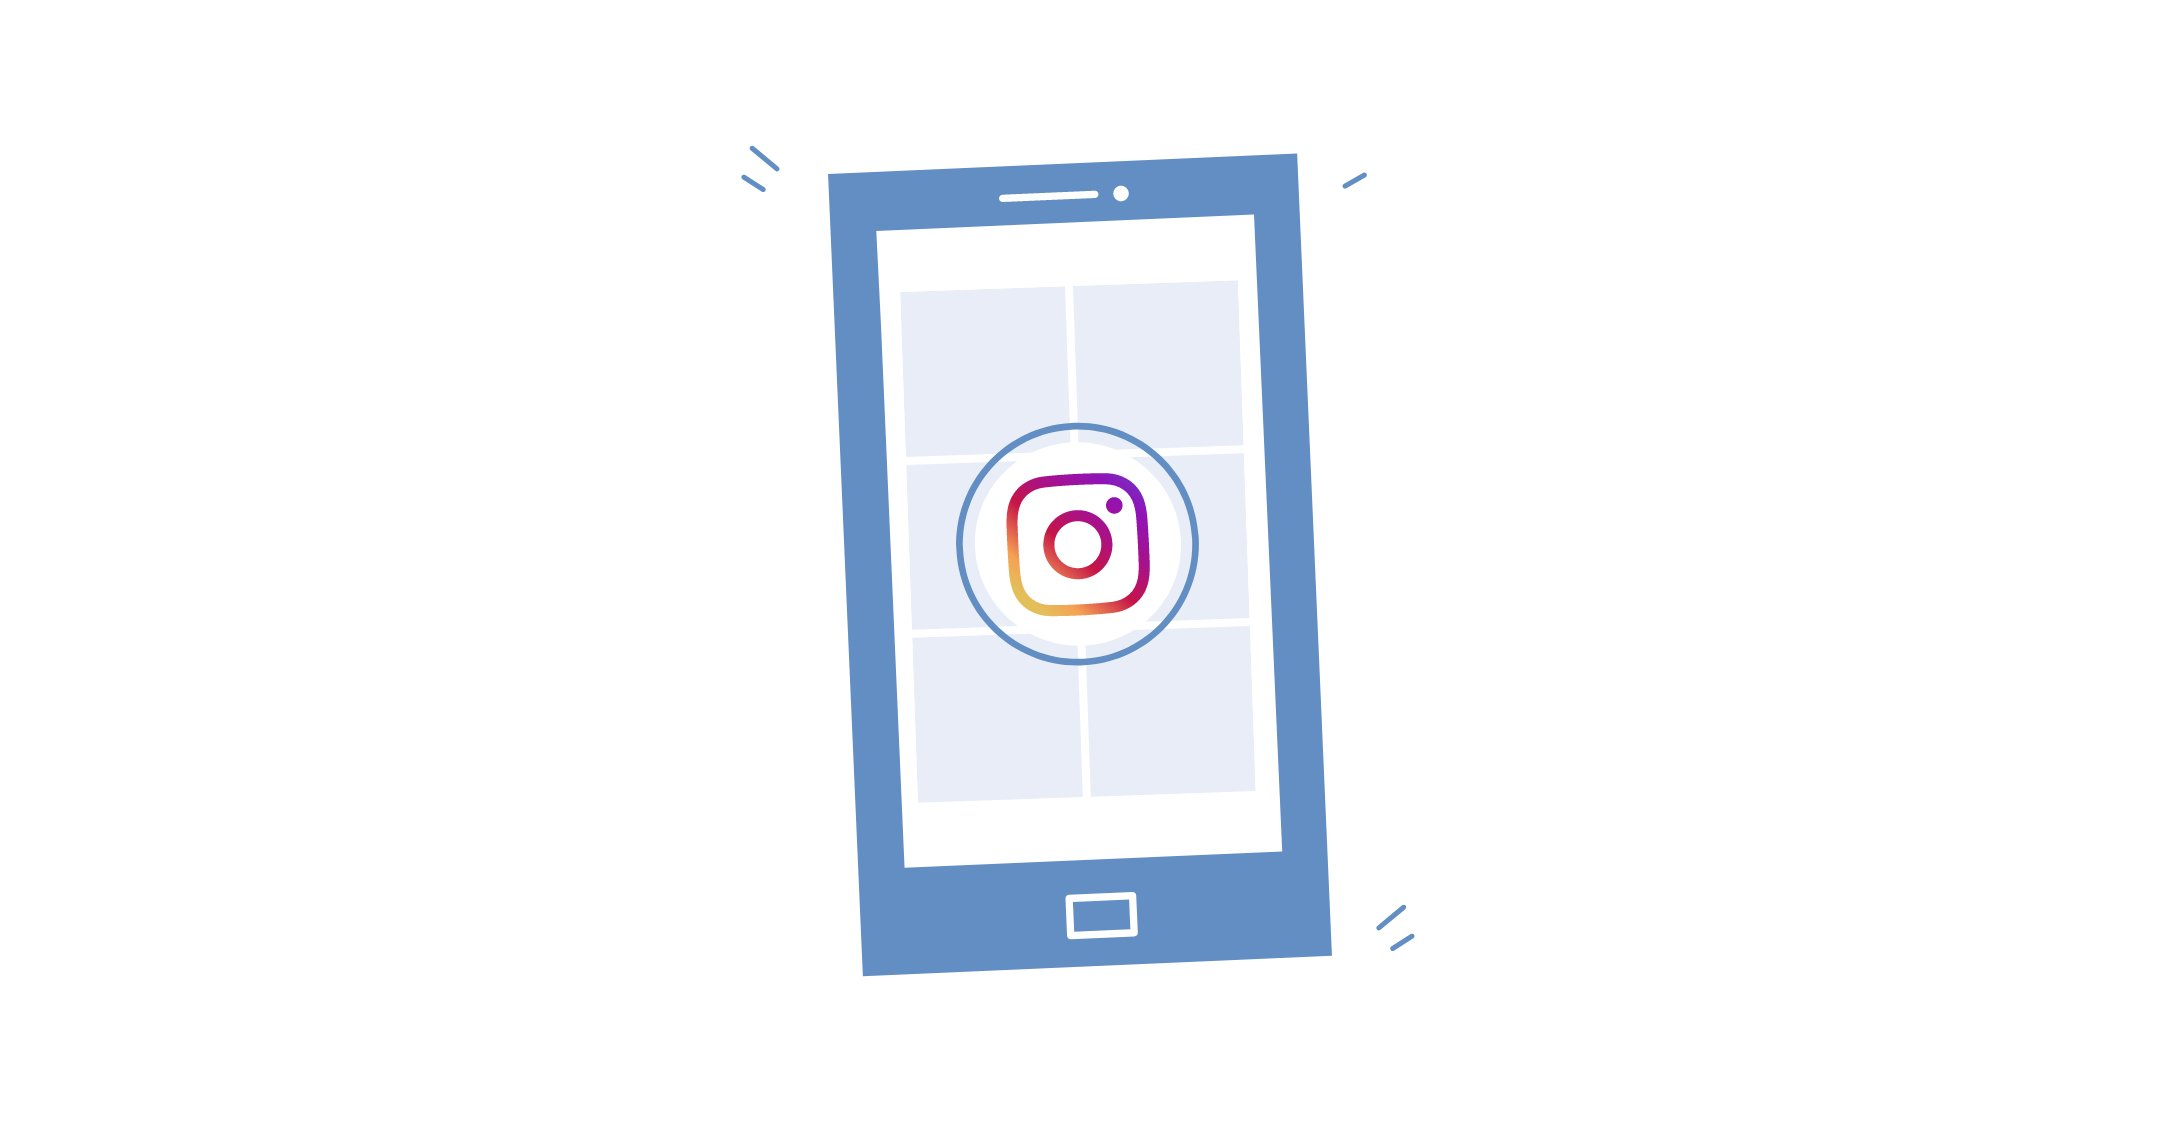 Instagram Shop A New Way to Sell and Discover Products